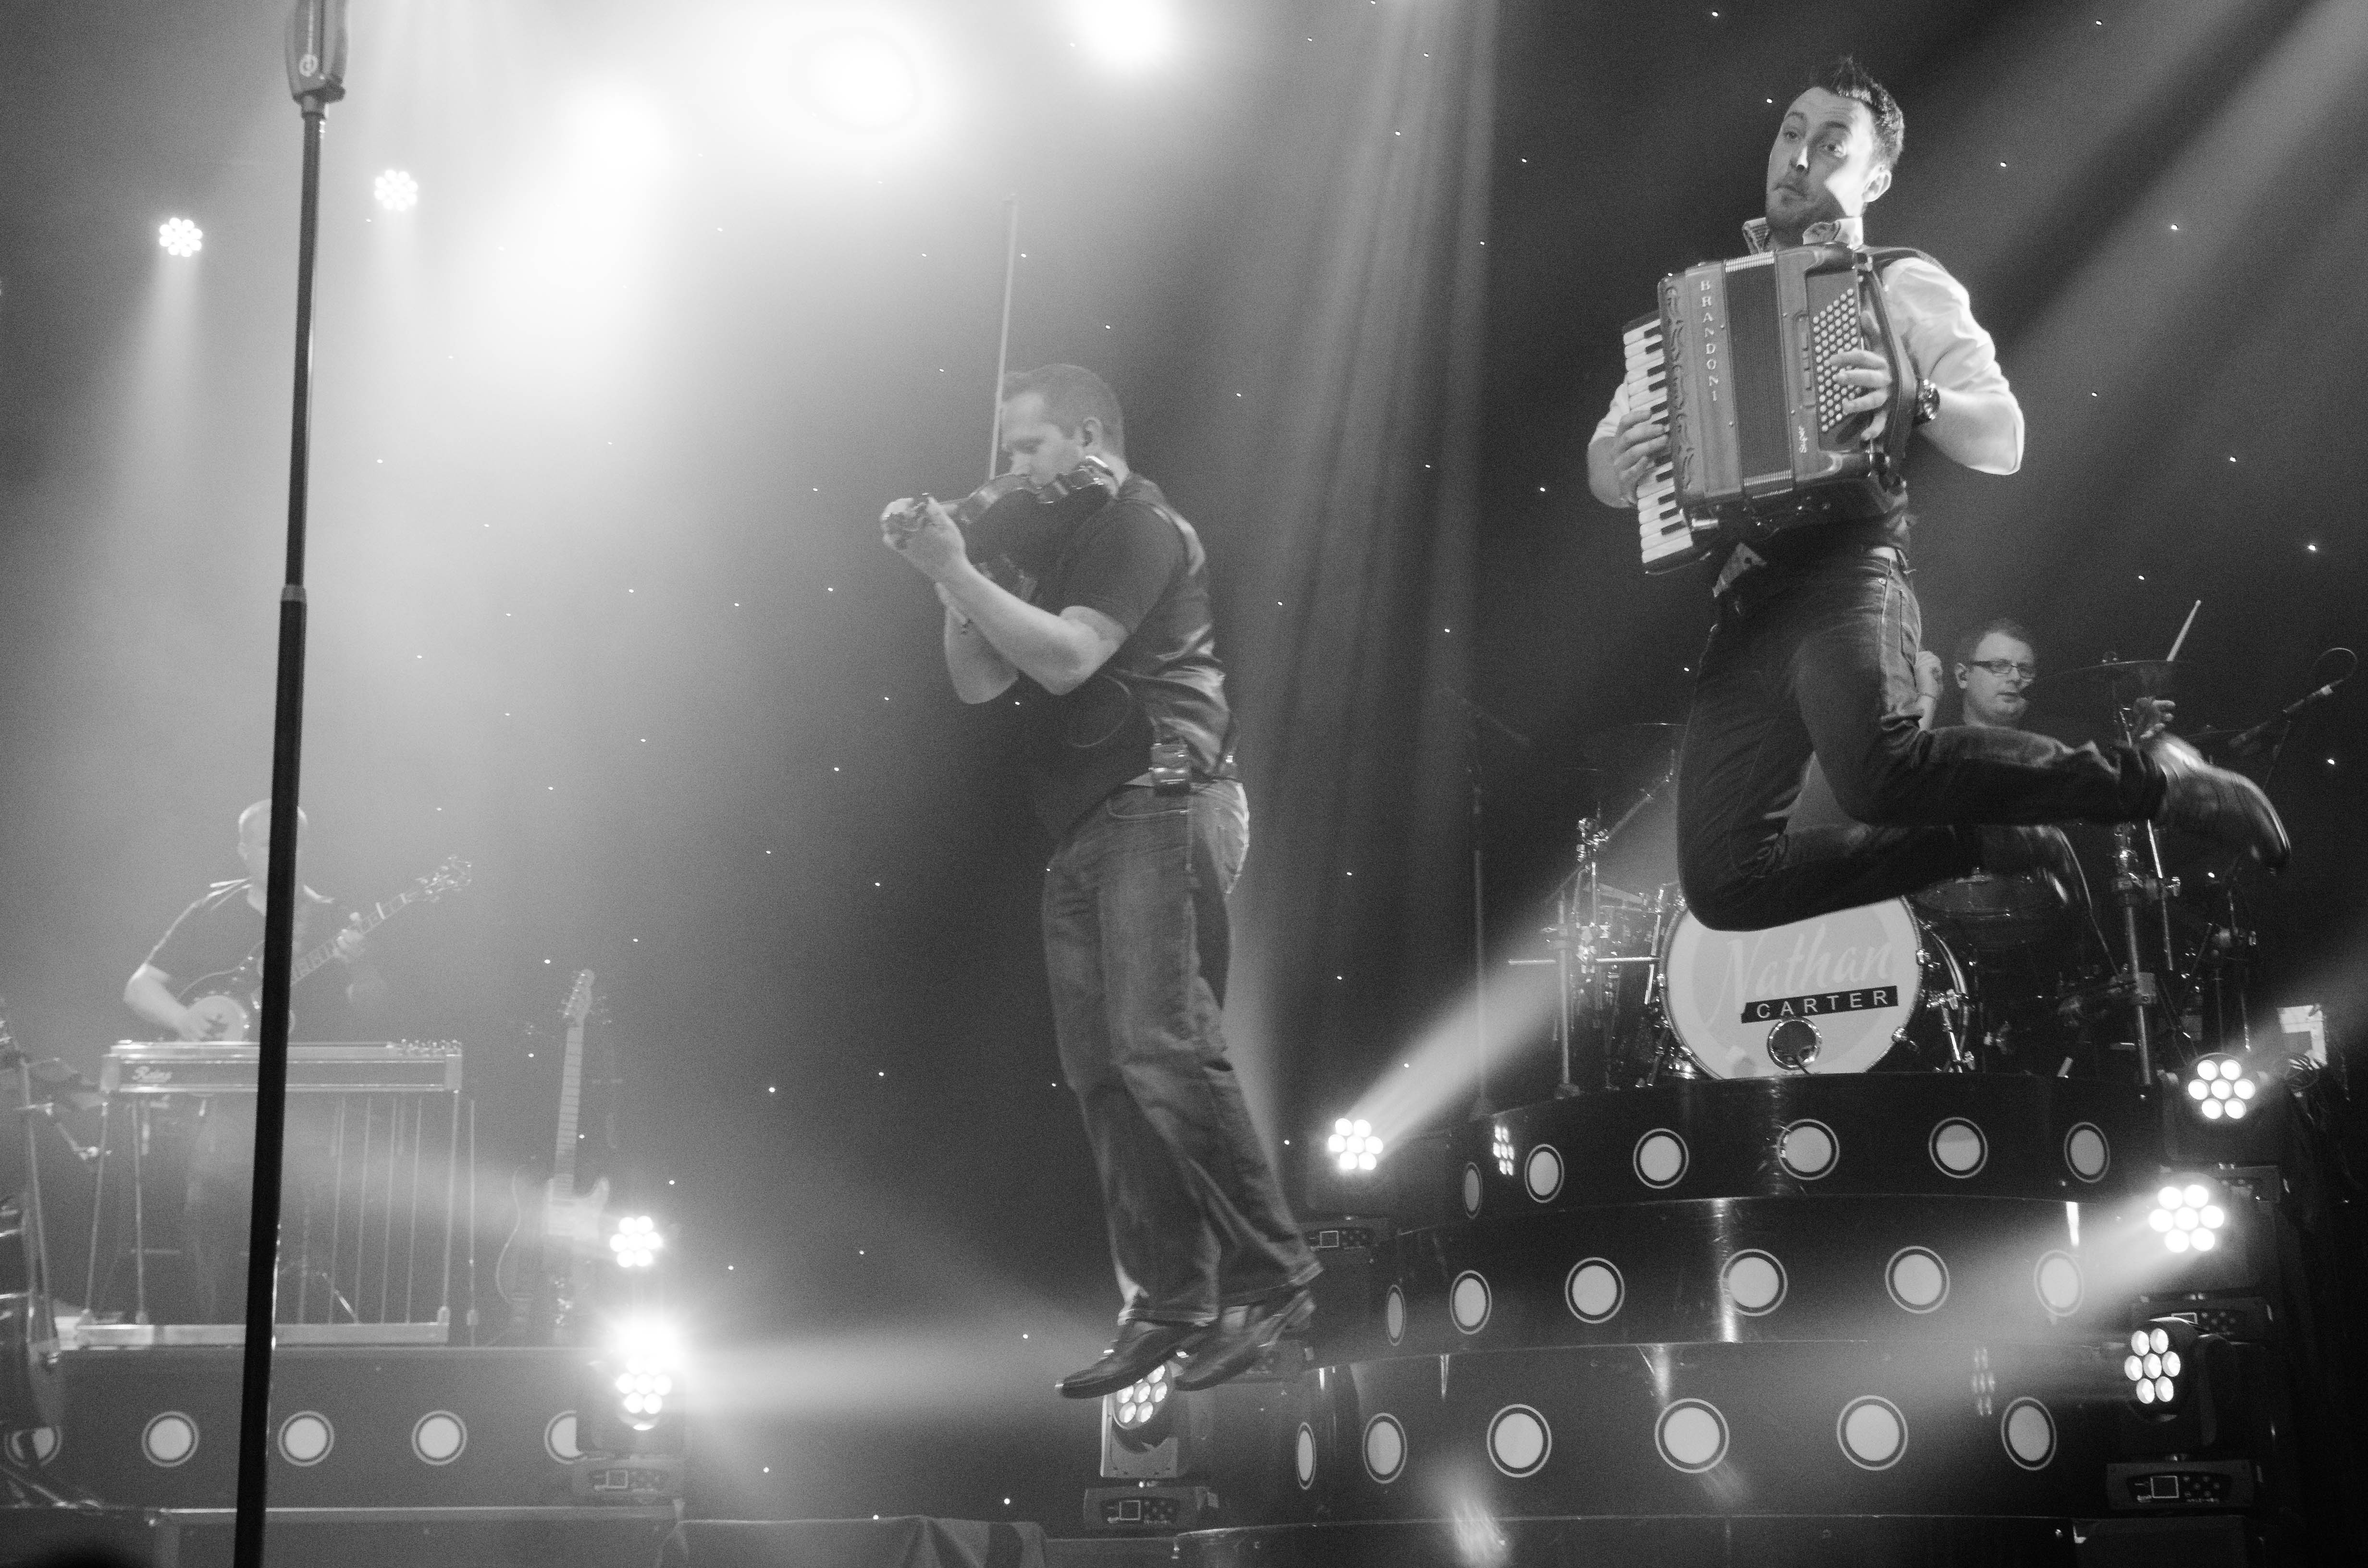 nathan-carter-at-the-marquee-cork-by-sean-smyth-15-6-14-34-of-55